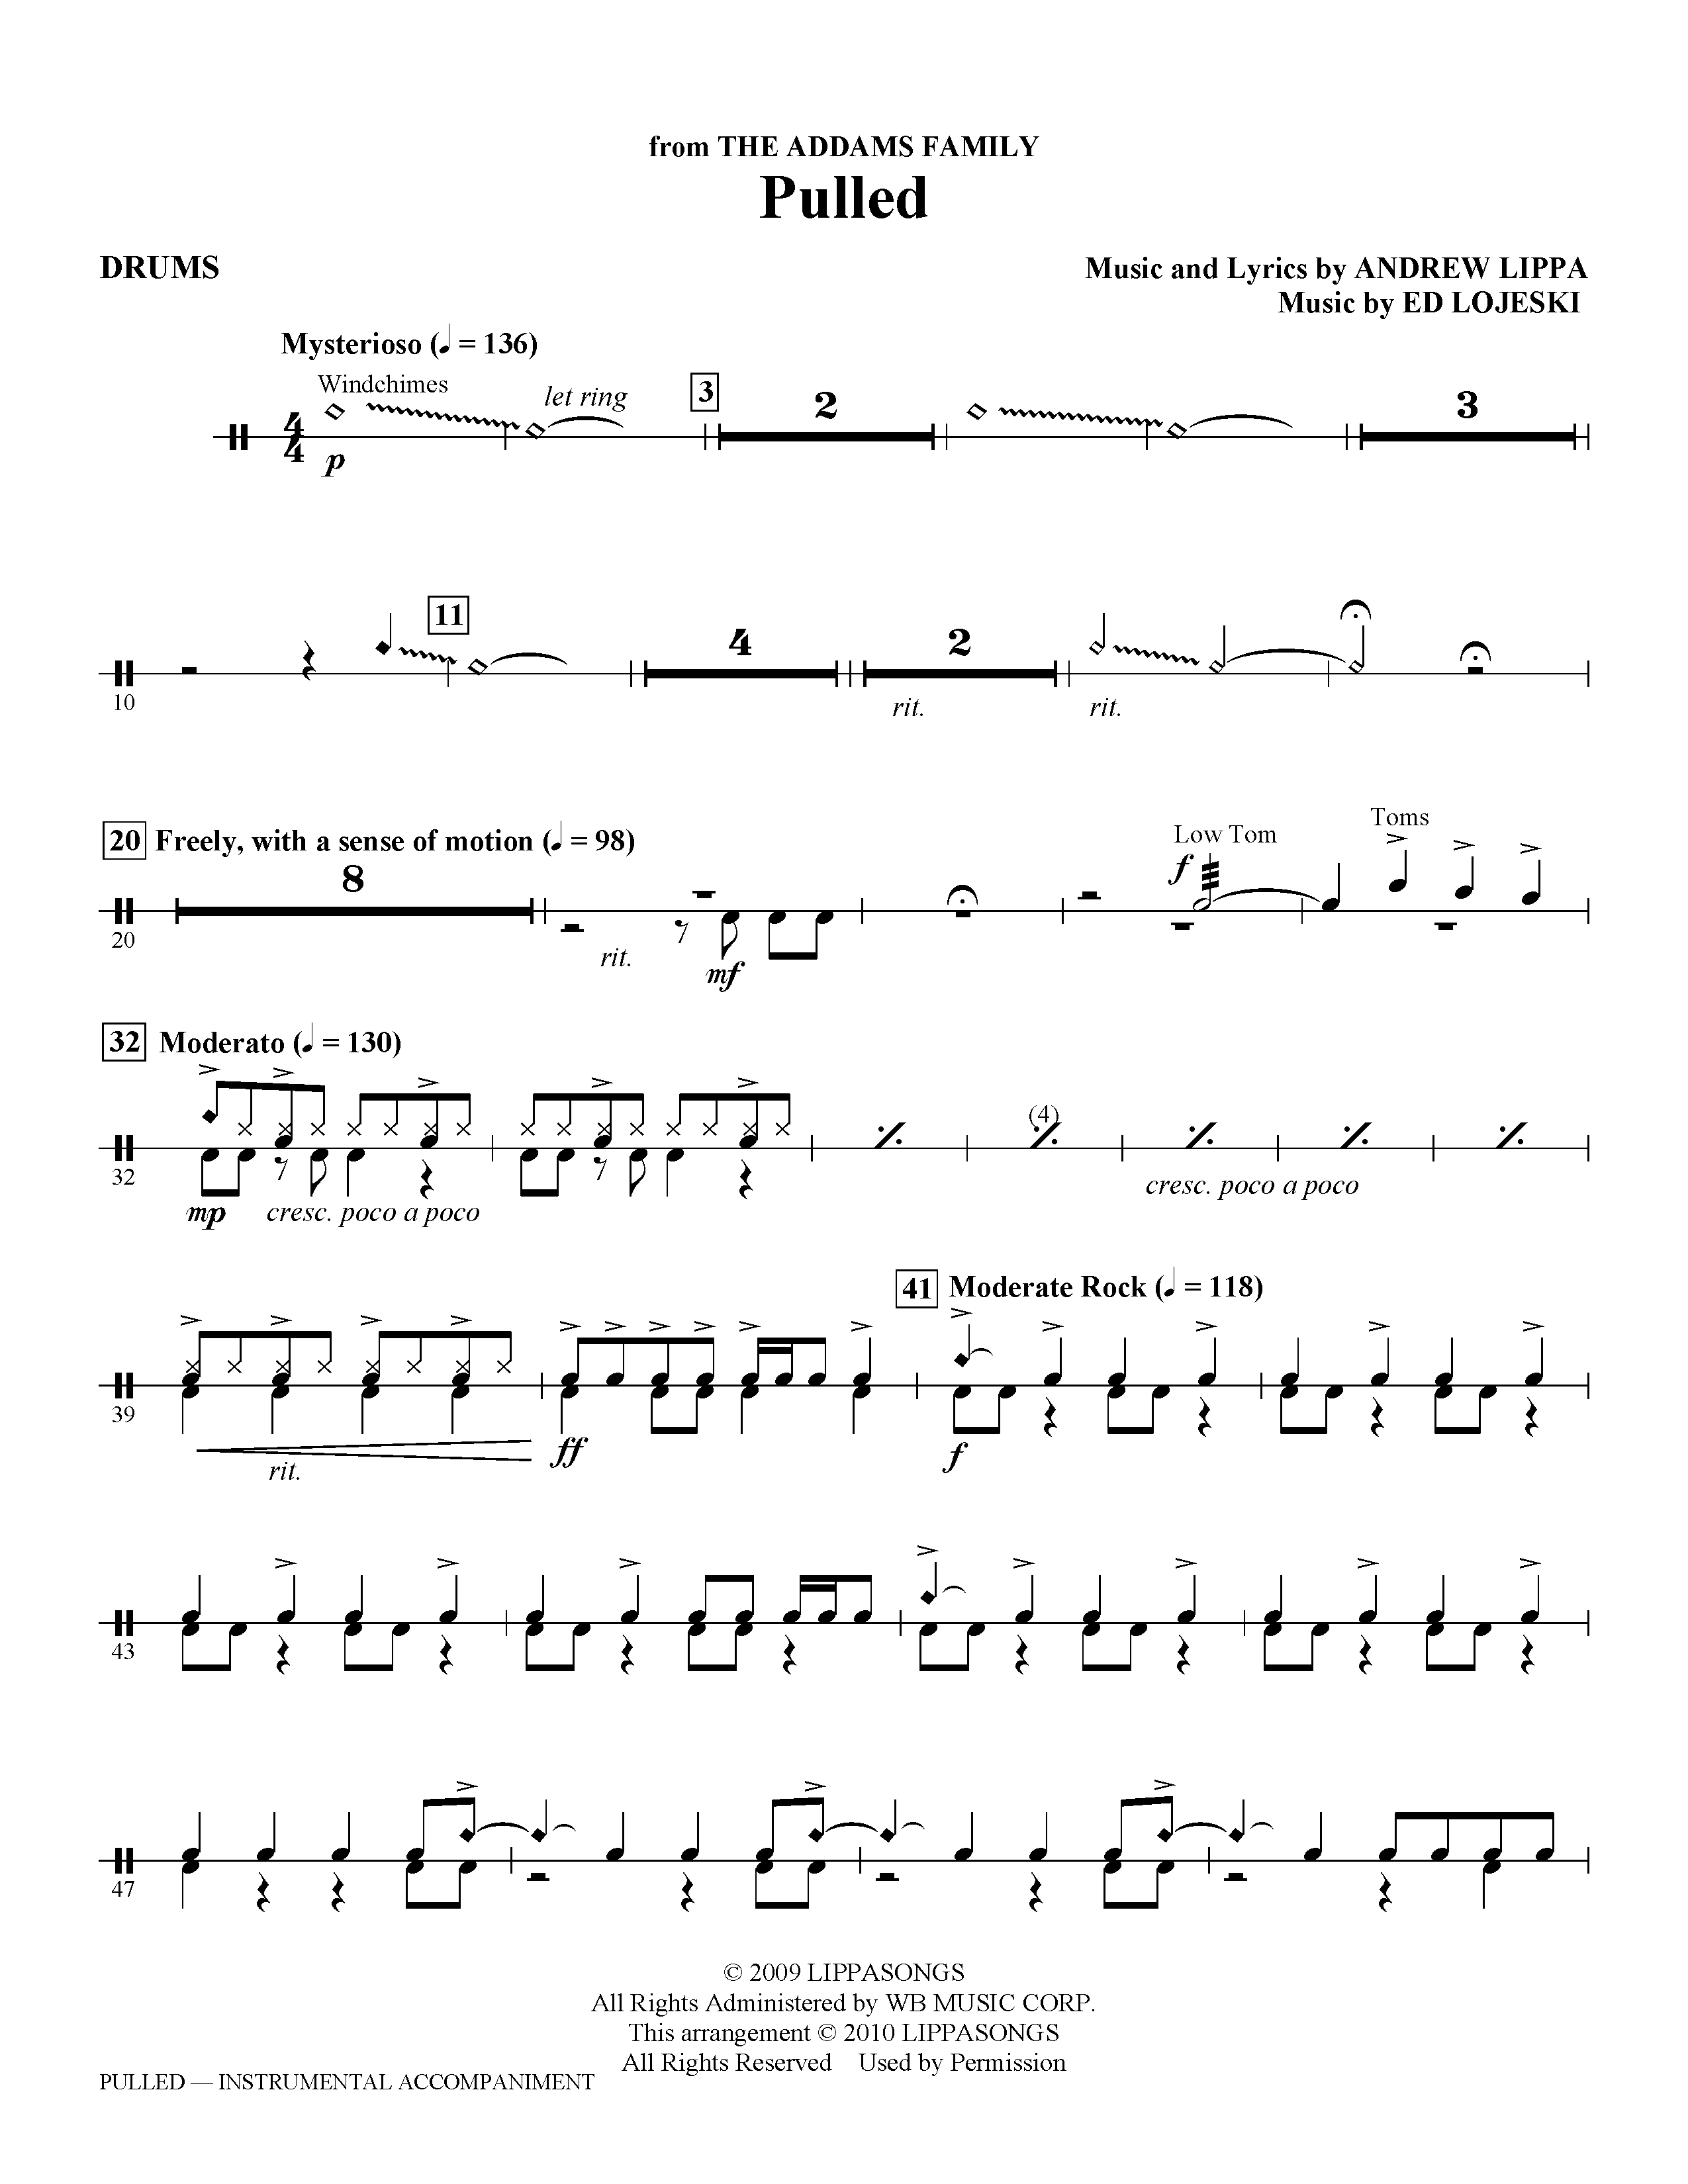 Ed Lojeski 'Pulled (from The Addams Family) - Drums' Sheet Music Notes,  Chords | Download Printable Choir Instrumental Pak - SKU: 296562